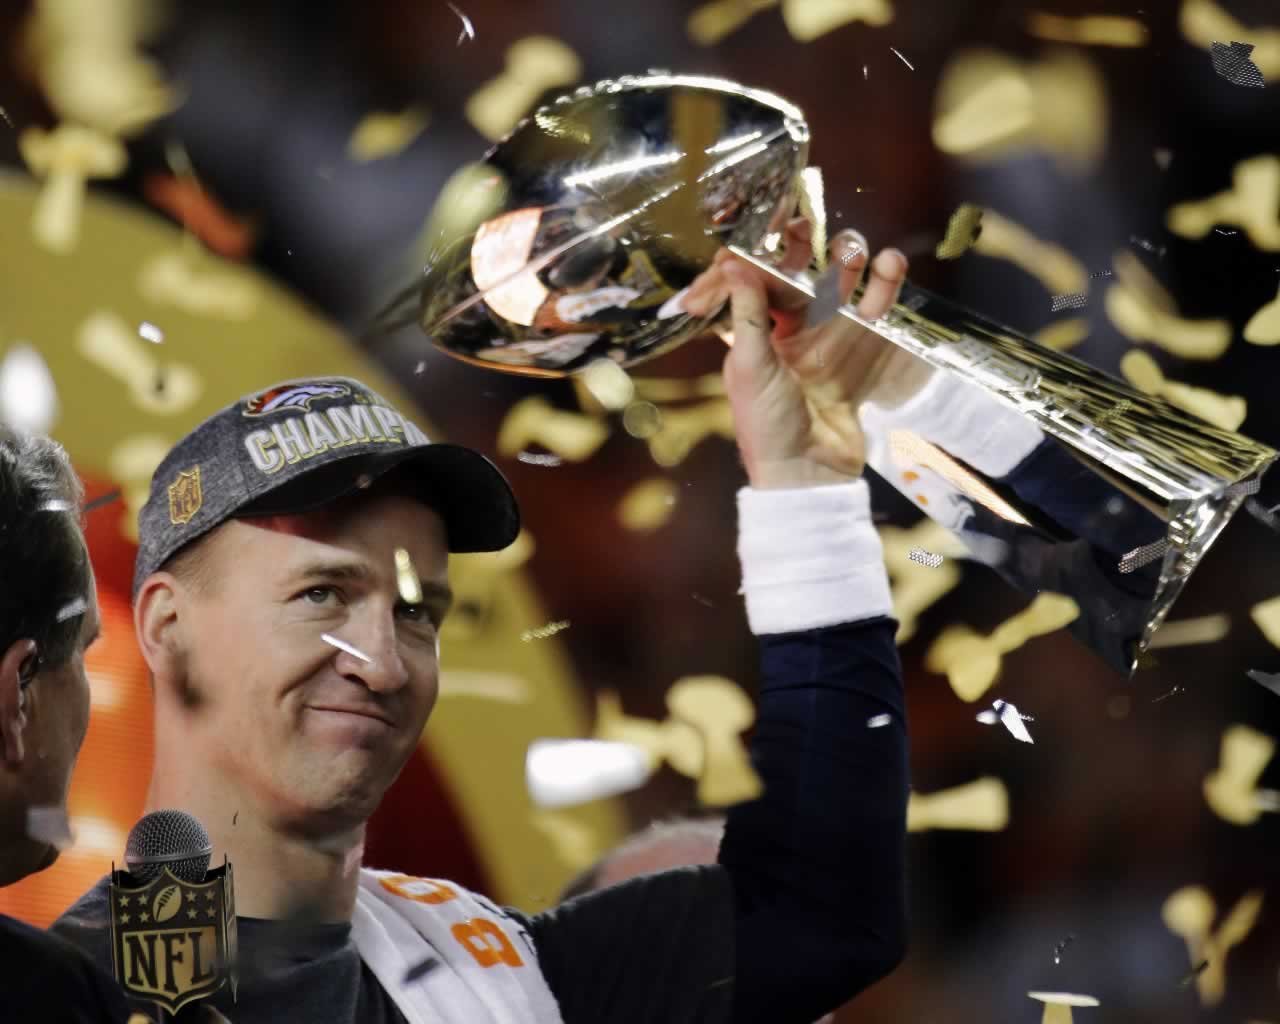 "<div class=""meta image-caption""><div class=""origin-logo origin-image none""><span>none</span></div><span class=""caption-text"">Broncos' Peyton Manning holds the Vince Lombardi Trophy after the NFL Super Bowl 50 football game Sunday, Feb. 7, 2016, in Santa Clara, Calif. (AP Photo/Julie Jacobson)</span></div>"